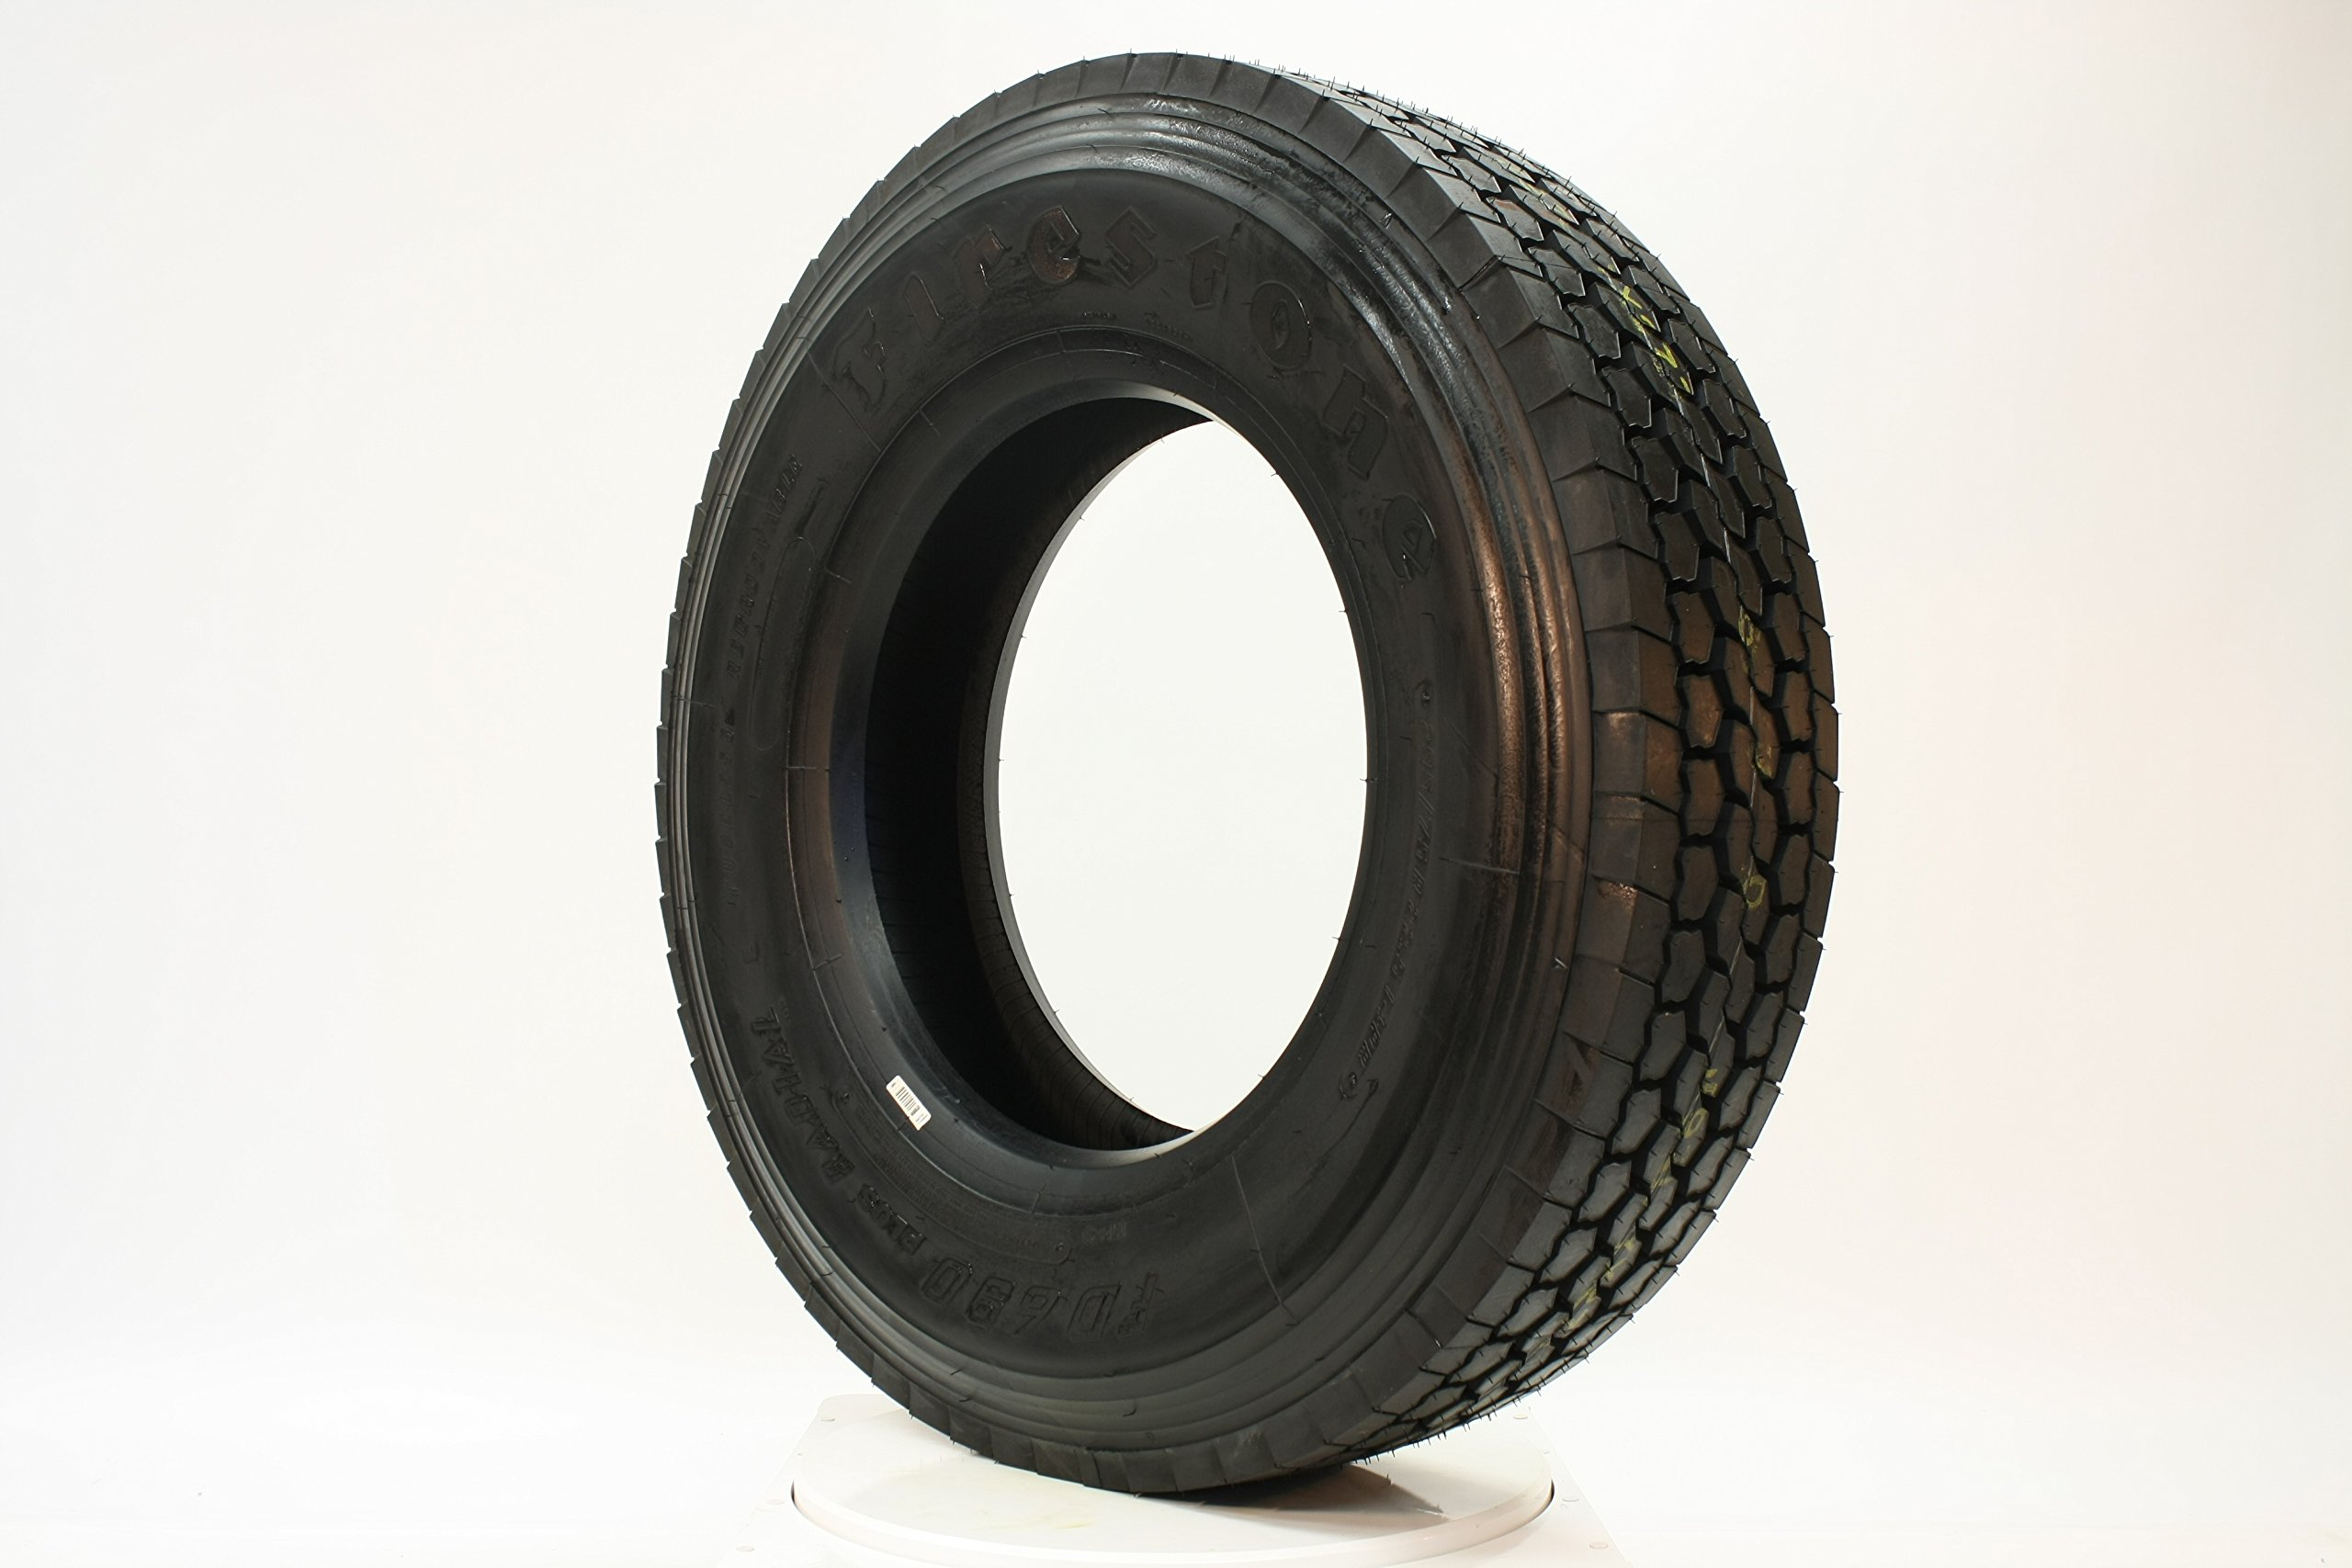 Firestone FD690 Plus Commercial Truck Tire - 245/70R19.5 00